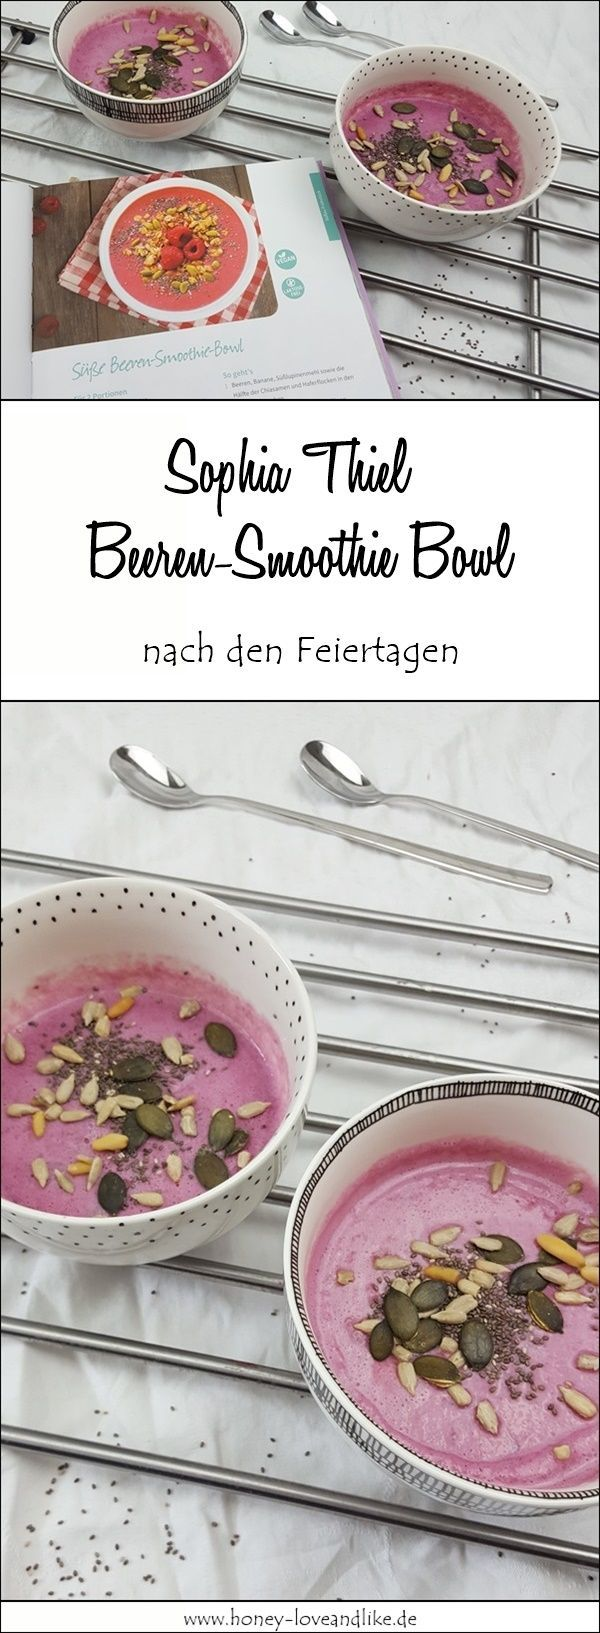 Beeren-Smoothie Bowl vom Sophia Thiel Fitness Sweets Kochbuch  #beeren #fitness #lowcarb #rezept #sm...